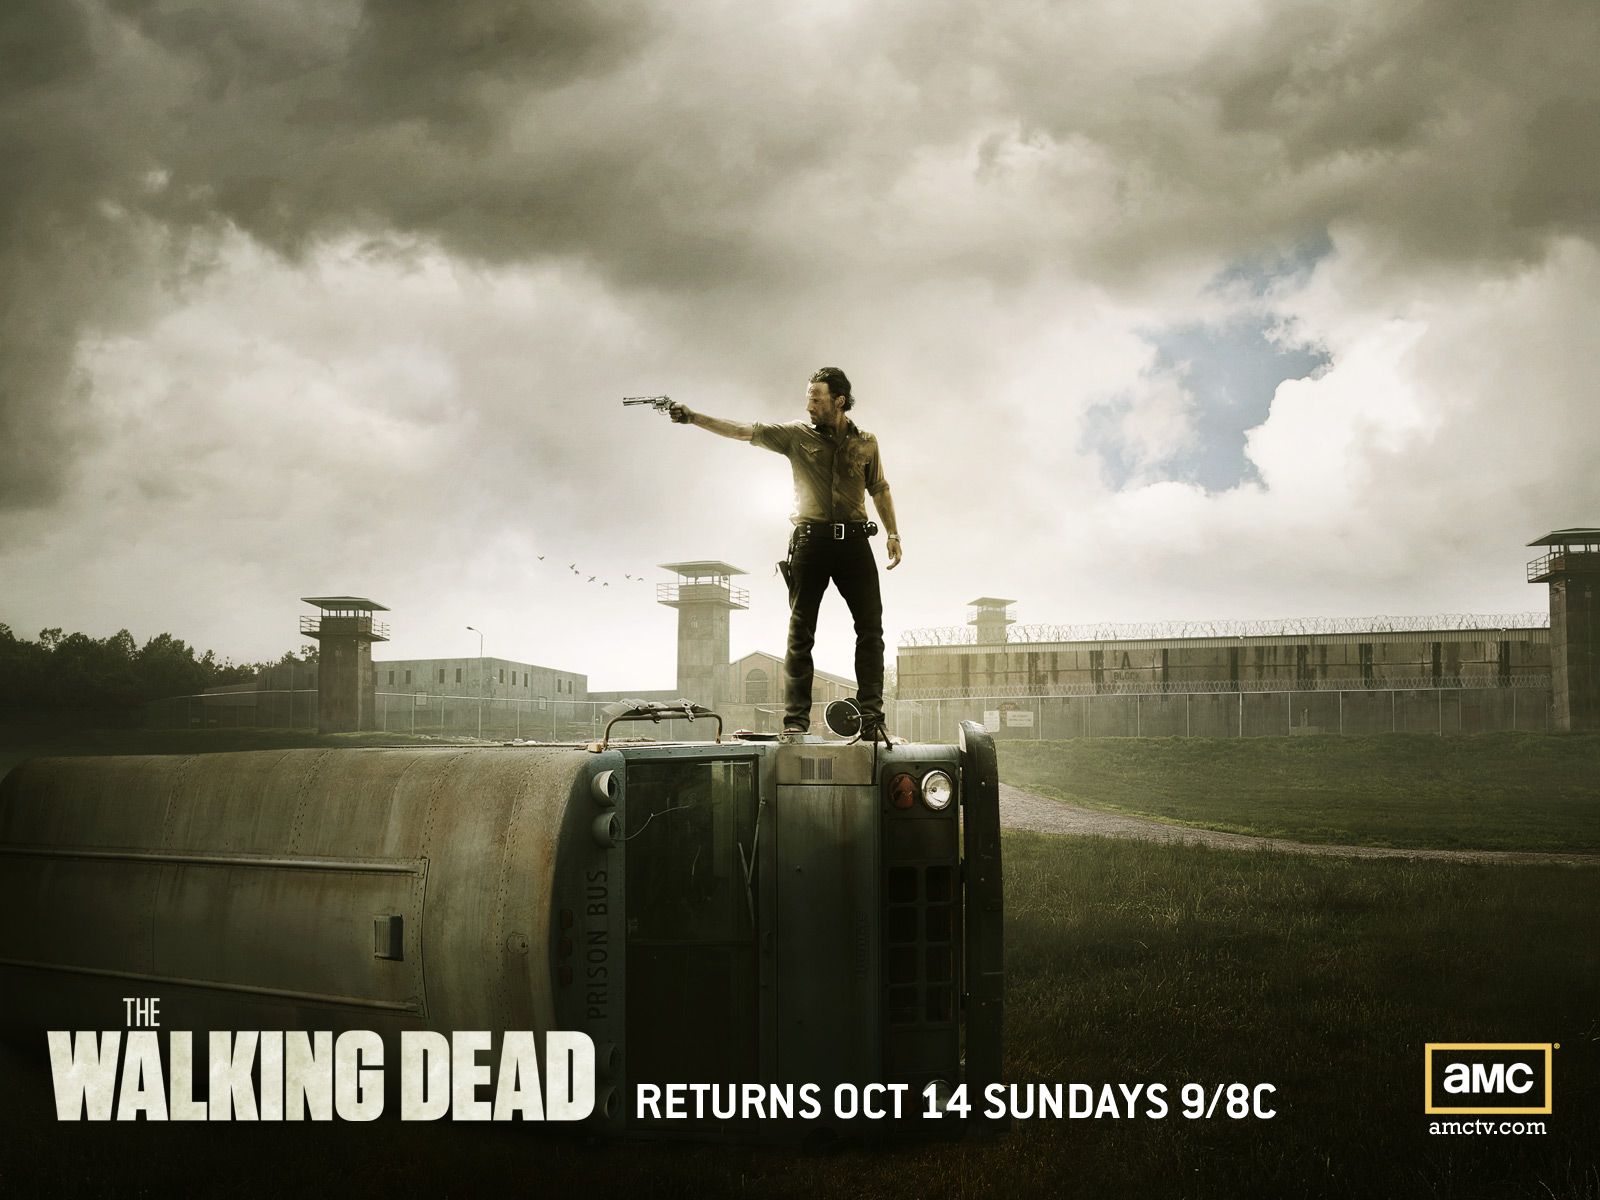 The-Walking-Dead-the-walking-dead-32297721-1600-1200.jpg